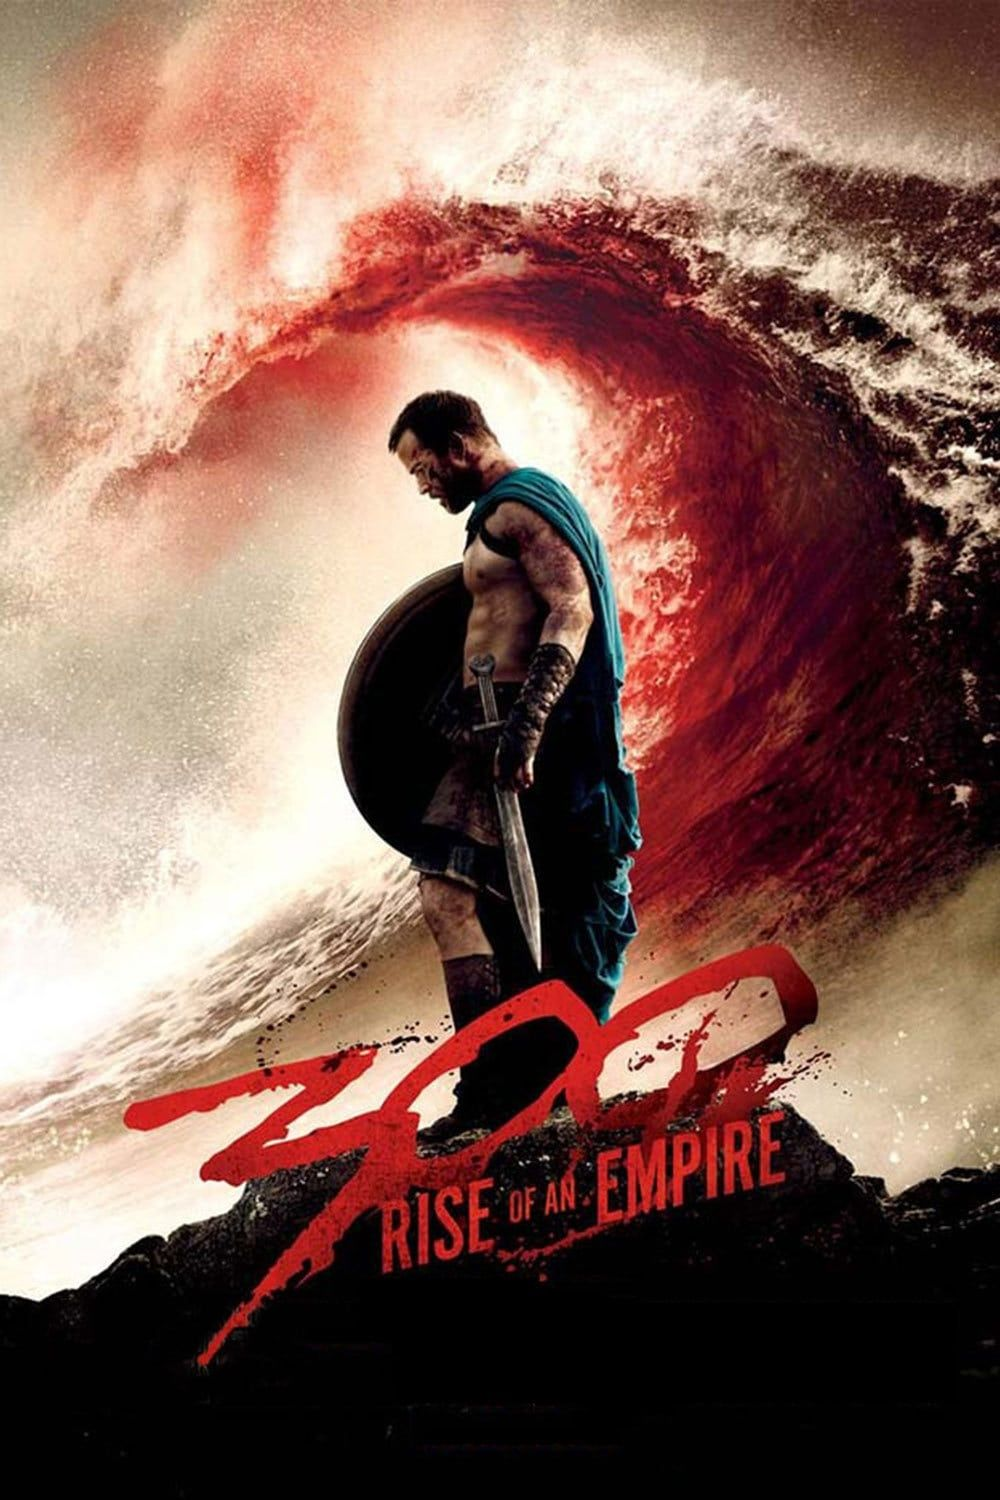 300 full movie download in 720p